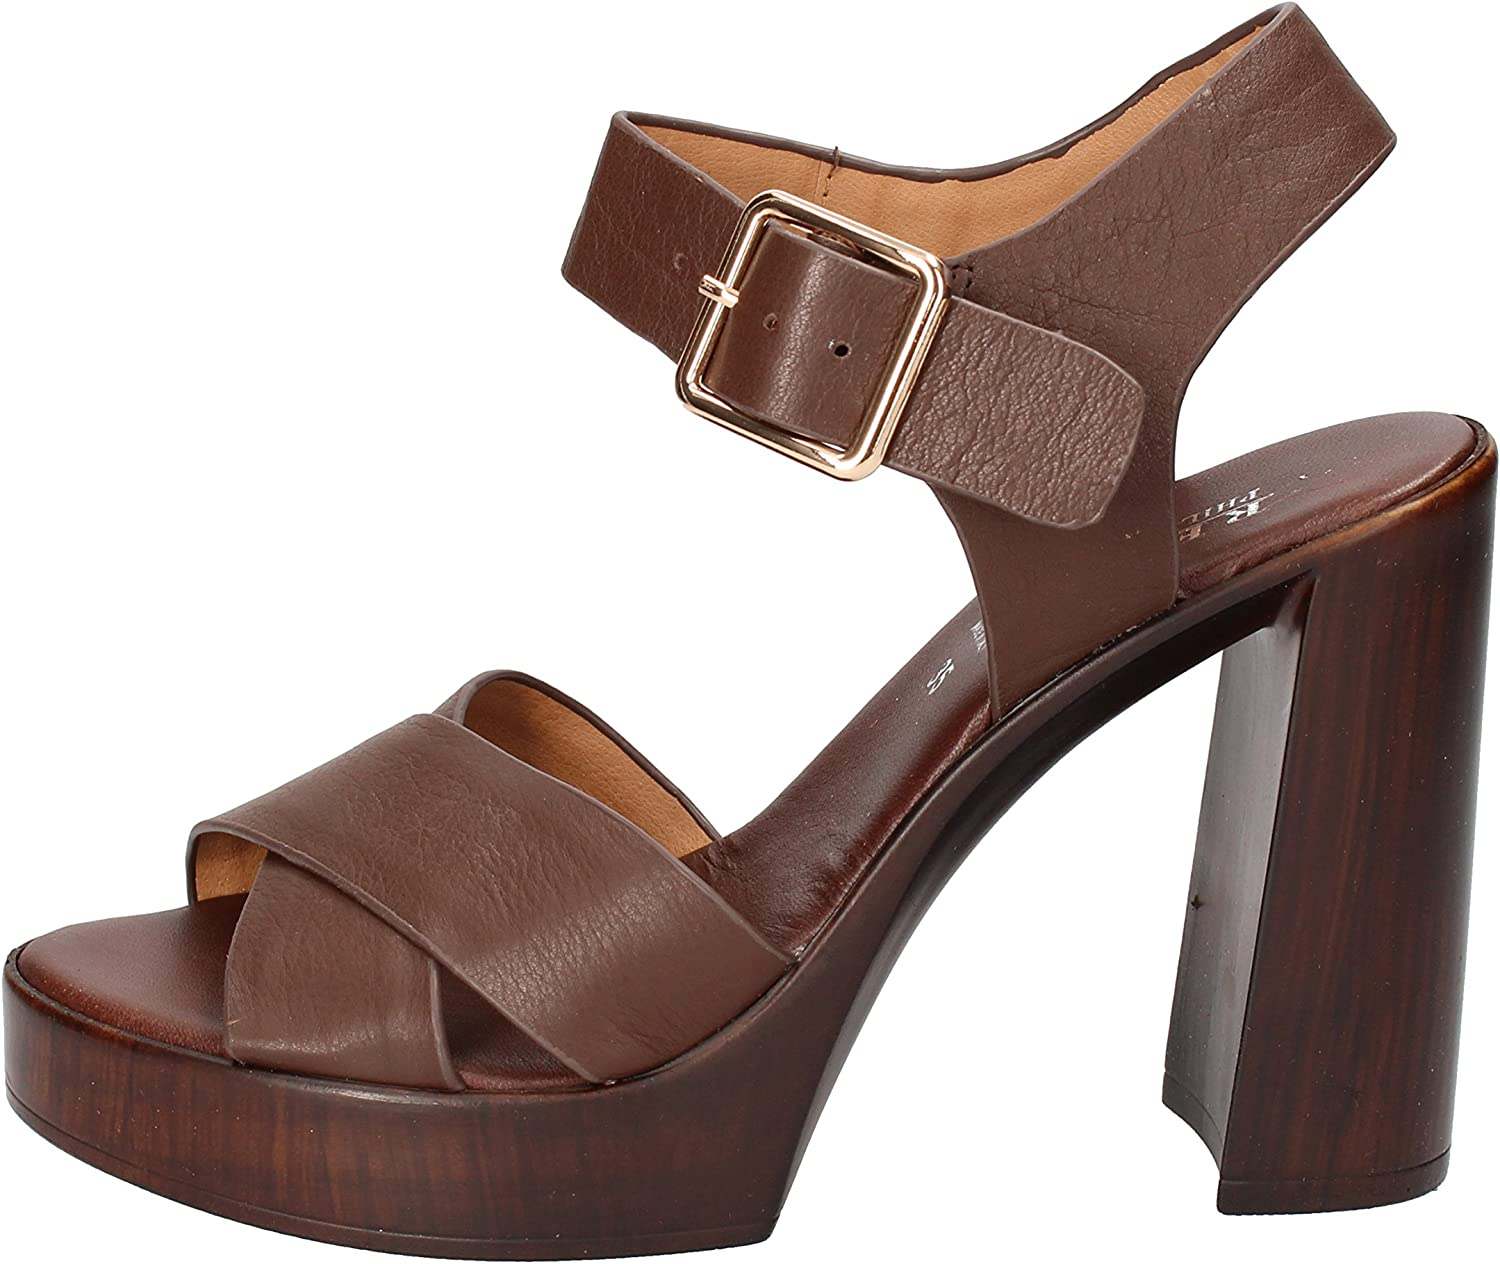 PHIL GATIER by REPO Sandals Womens Leather Brown